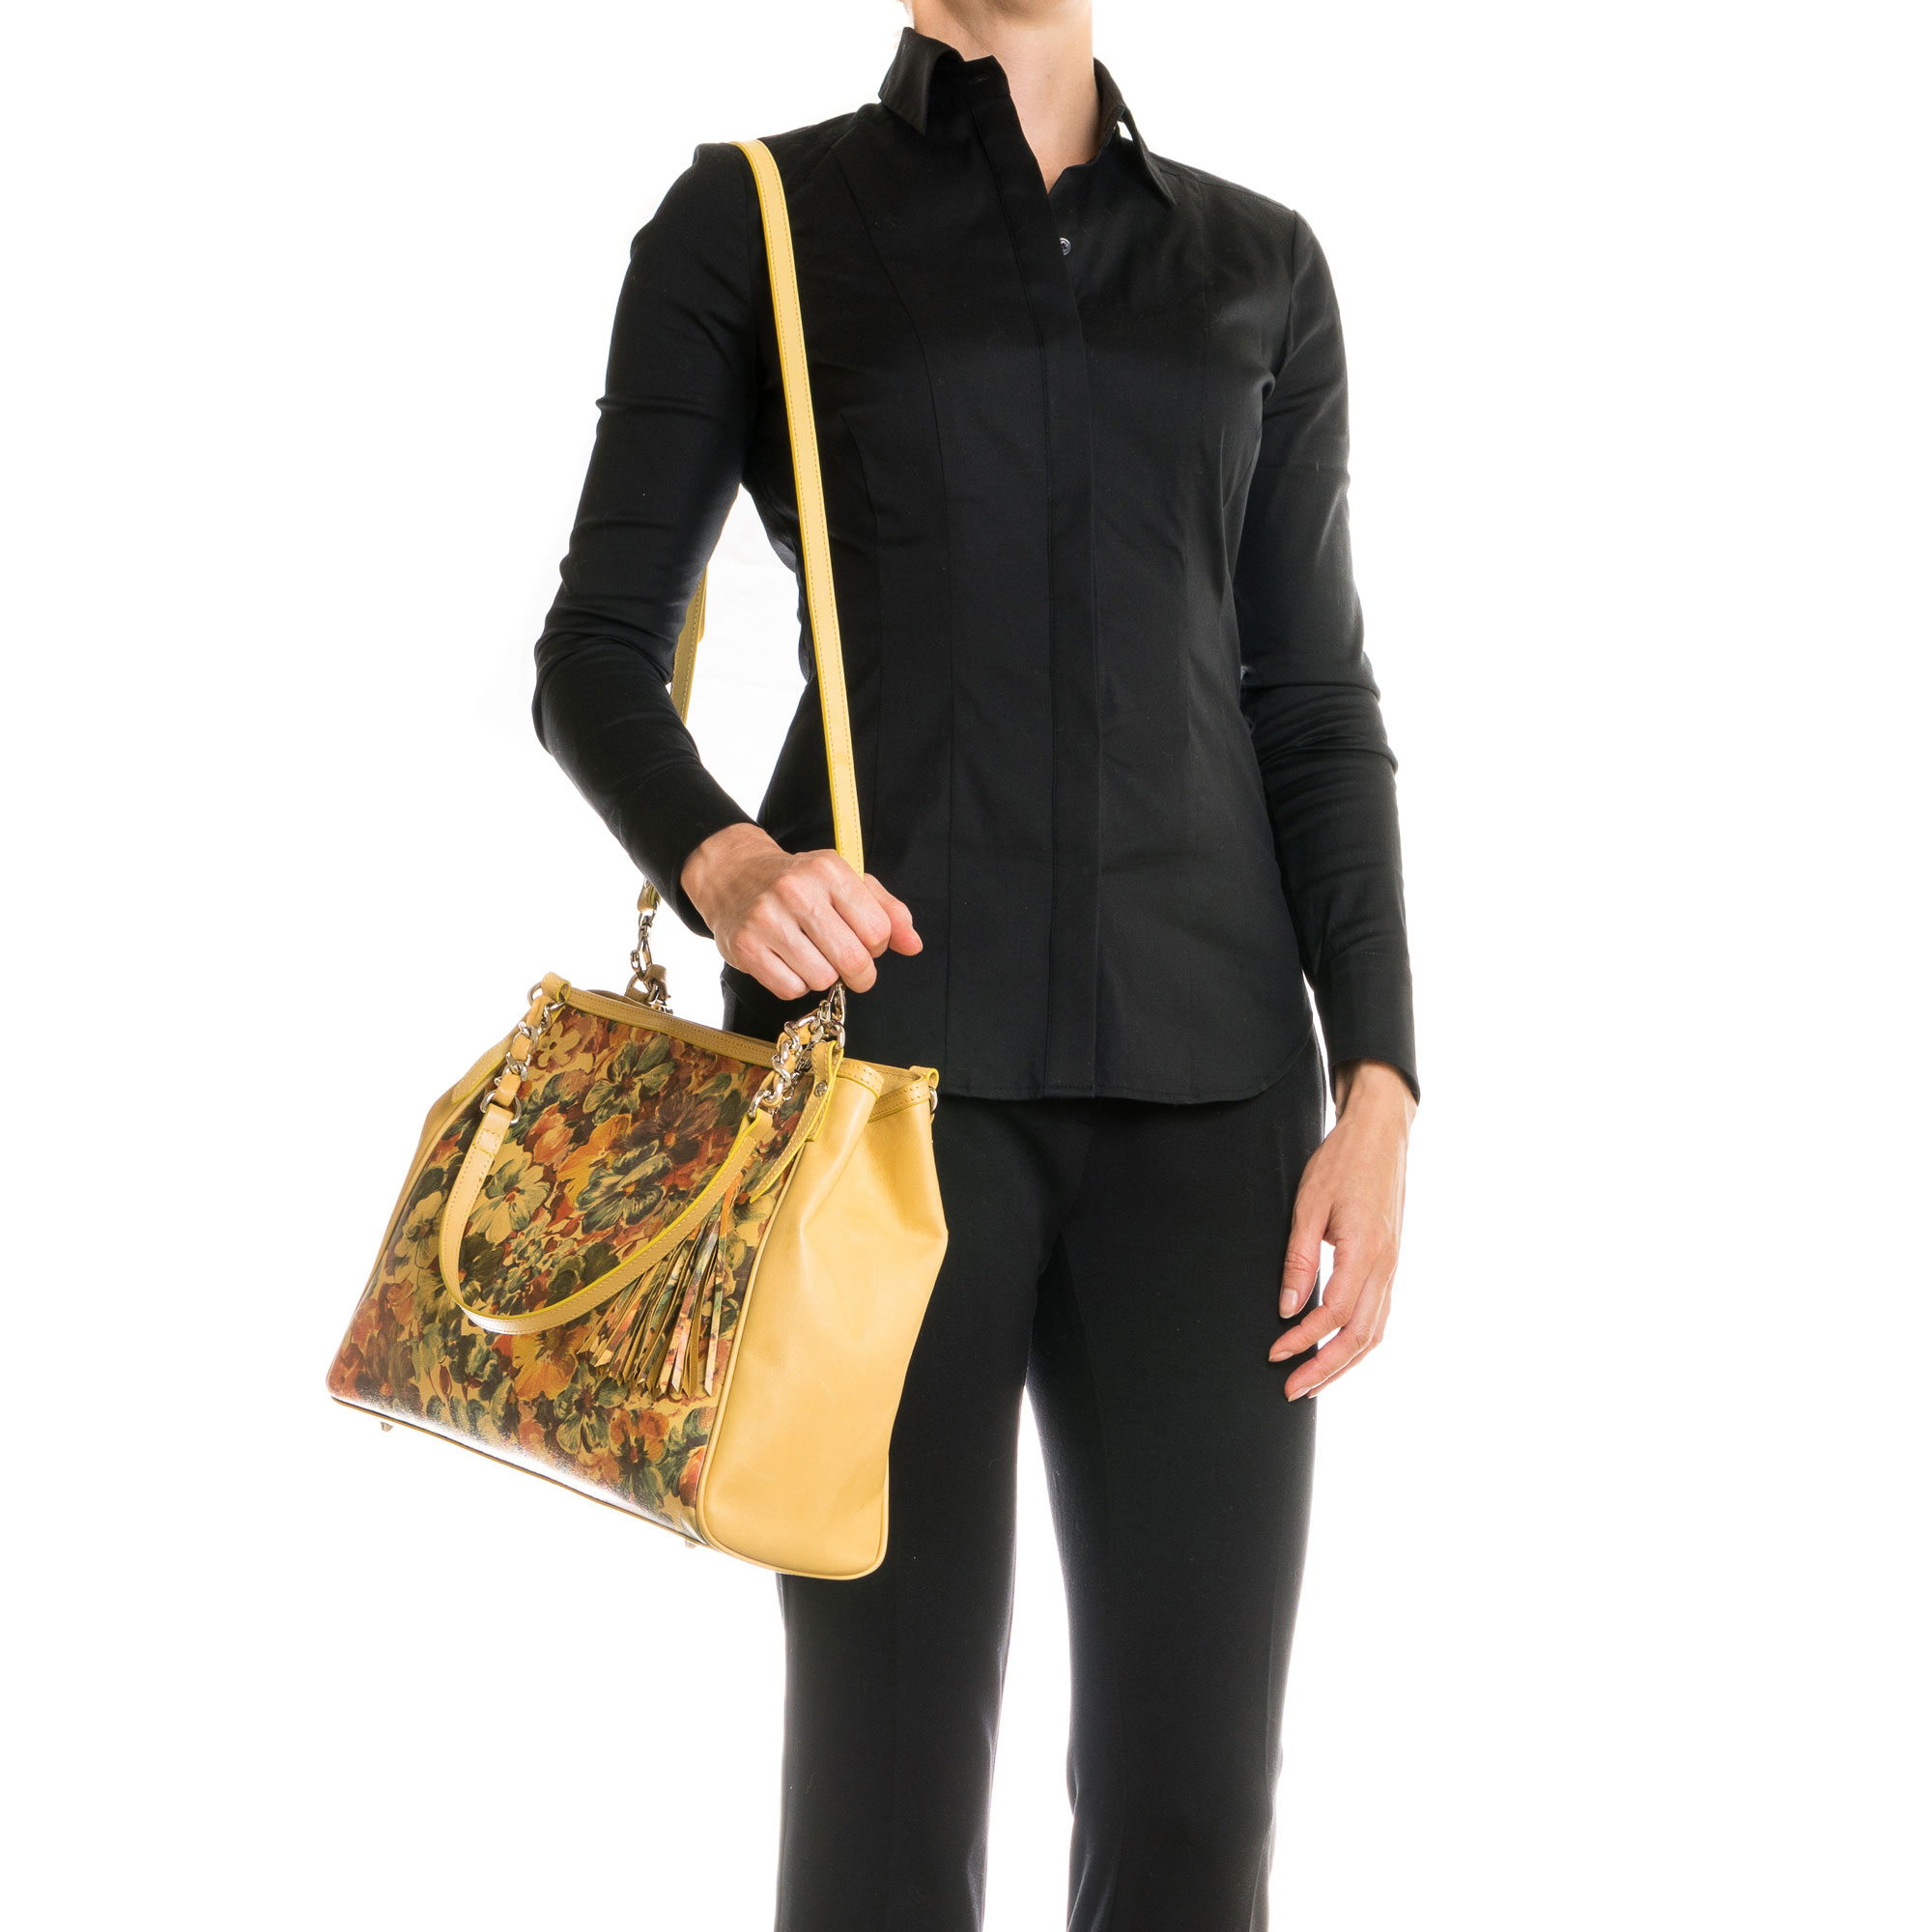 Cynthia Rowley Yellow Purse: Enriched Italian Made Yellow Leather Tote Handbag With